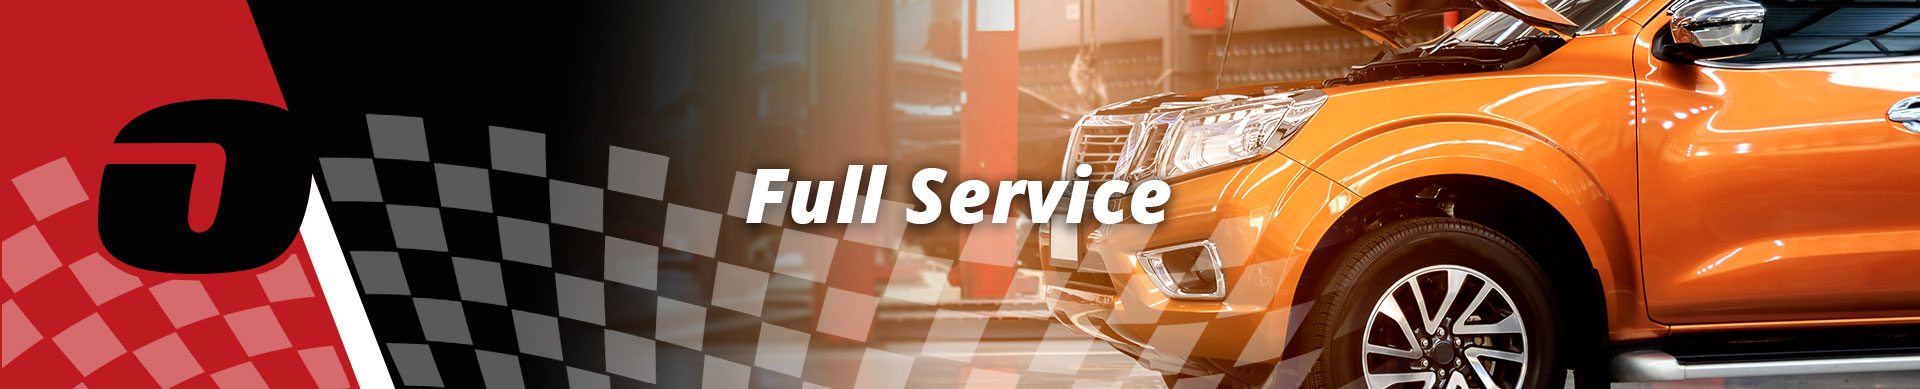 full-service-vehicle-repair-maintenance